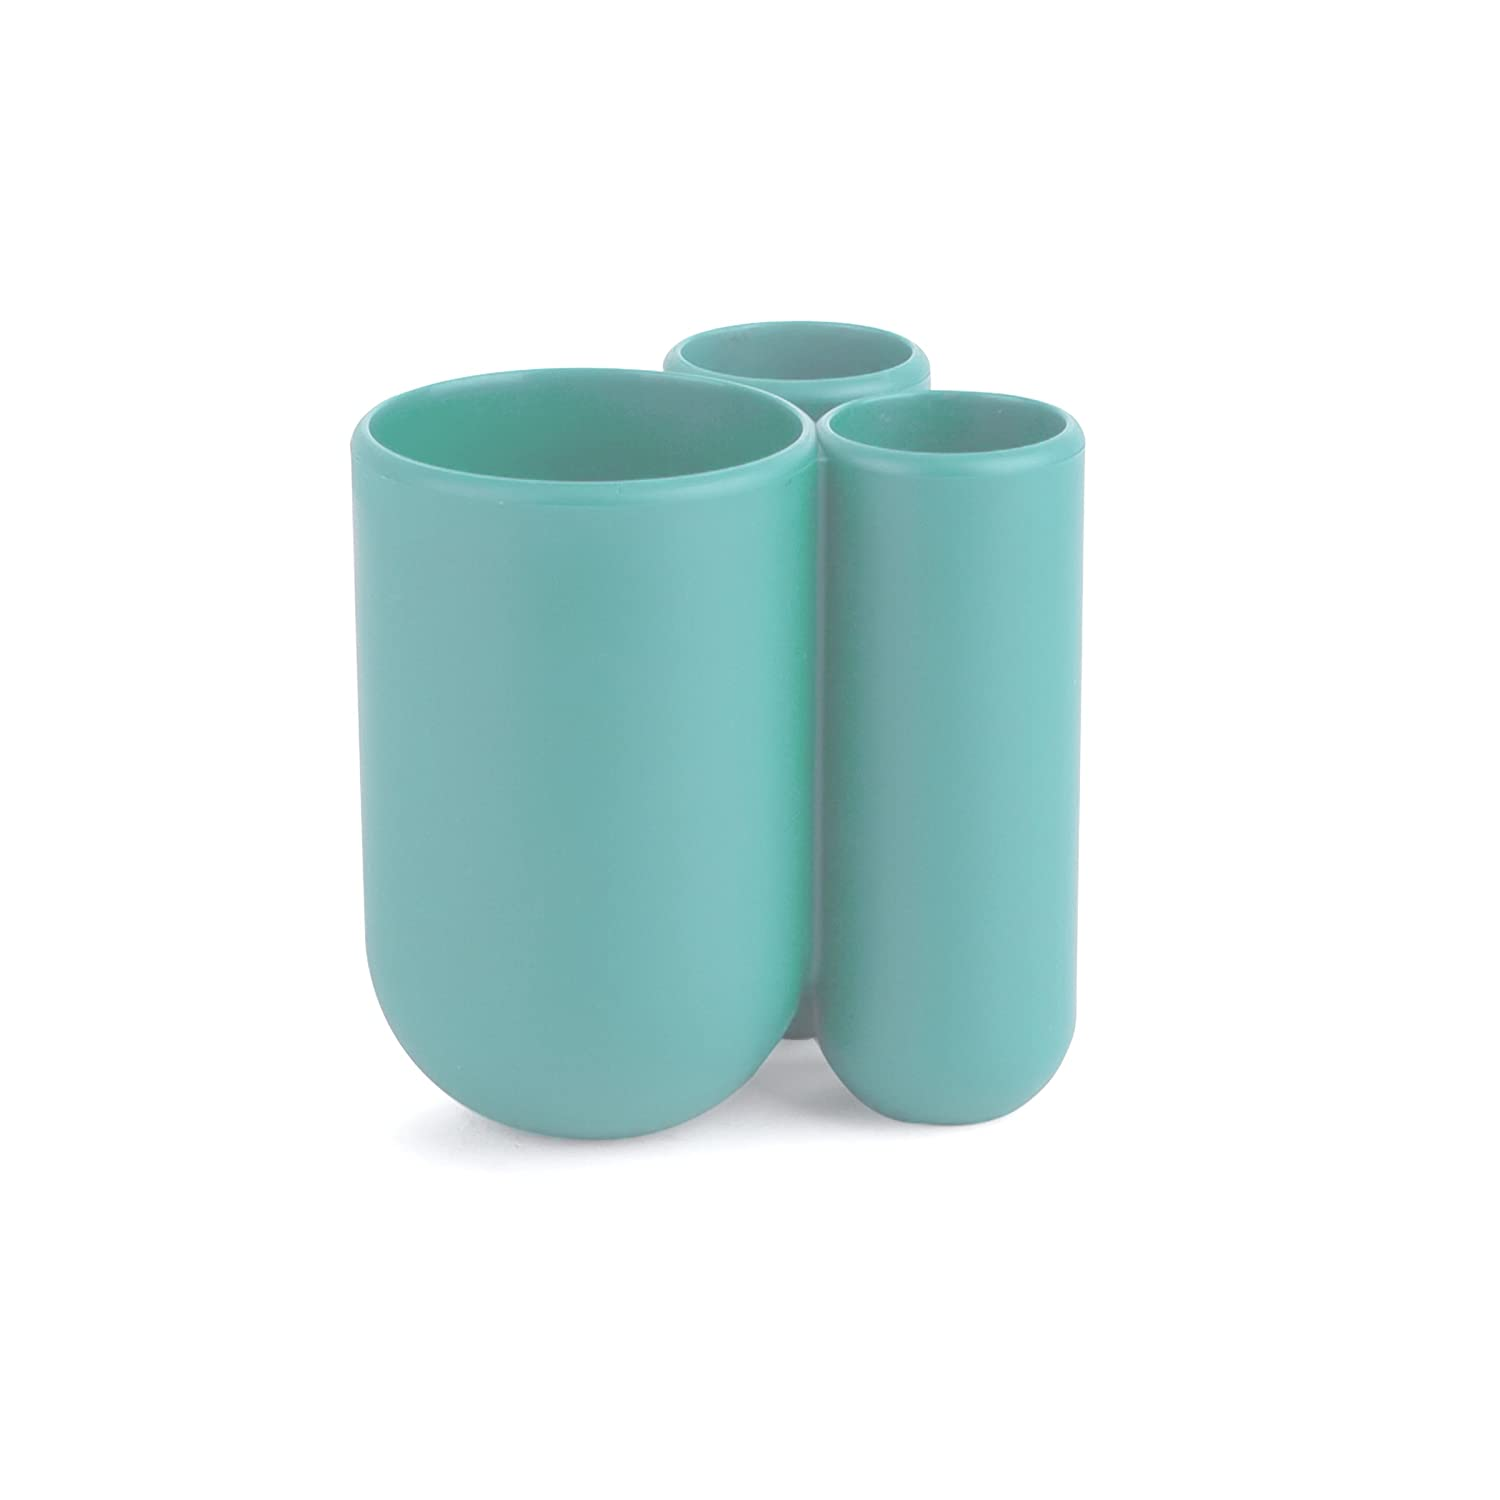 Amazon.com: Umbra Touch Toothbrush Holder, Surf Blue: Home & Kitchen